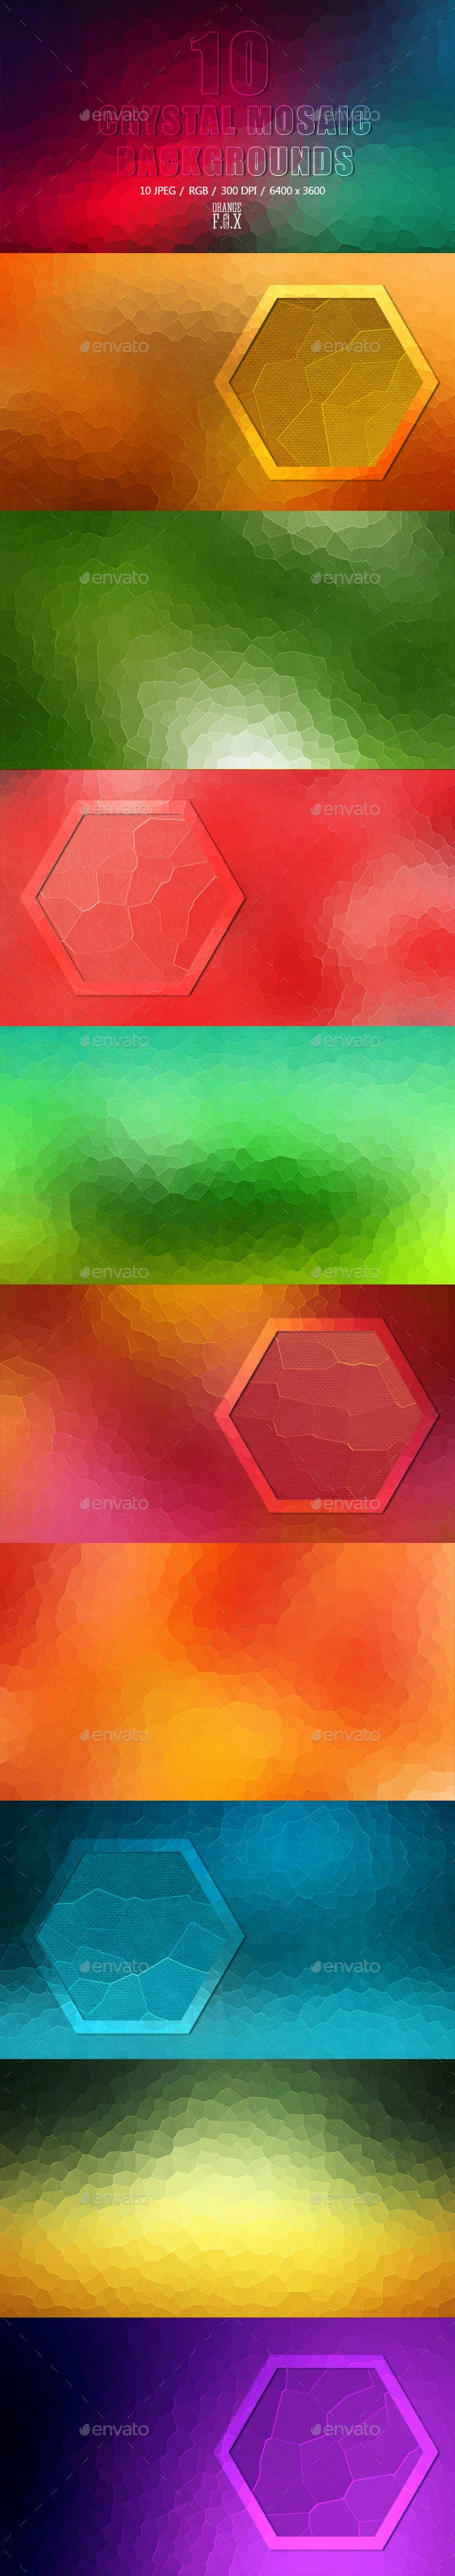 10 Crystal Mosaic Backgrounds - Backgrounds Graphics